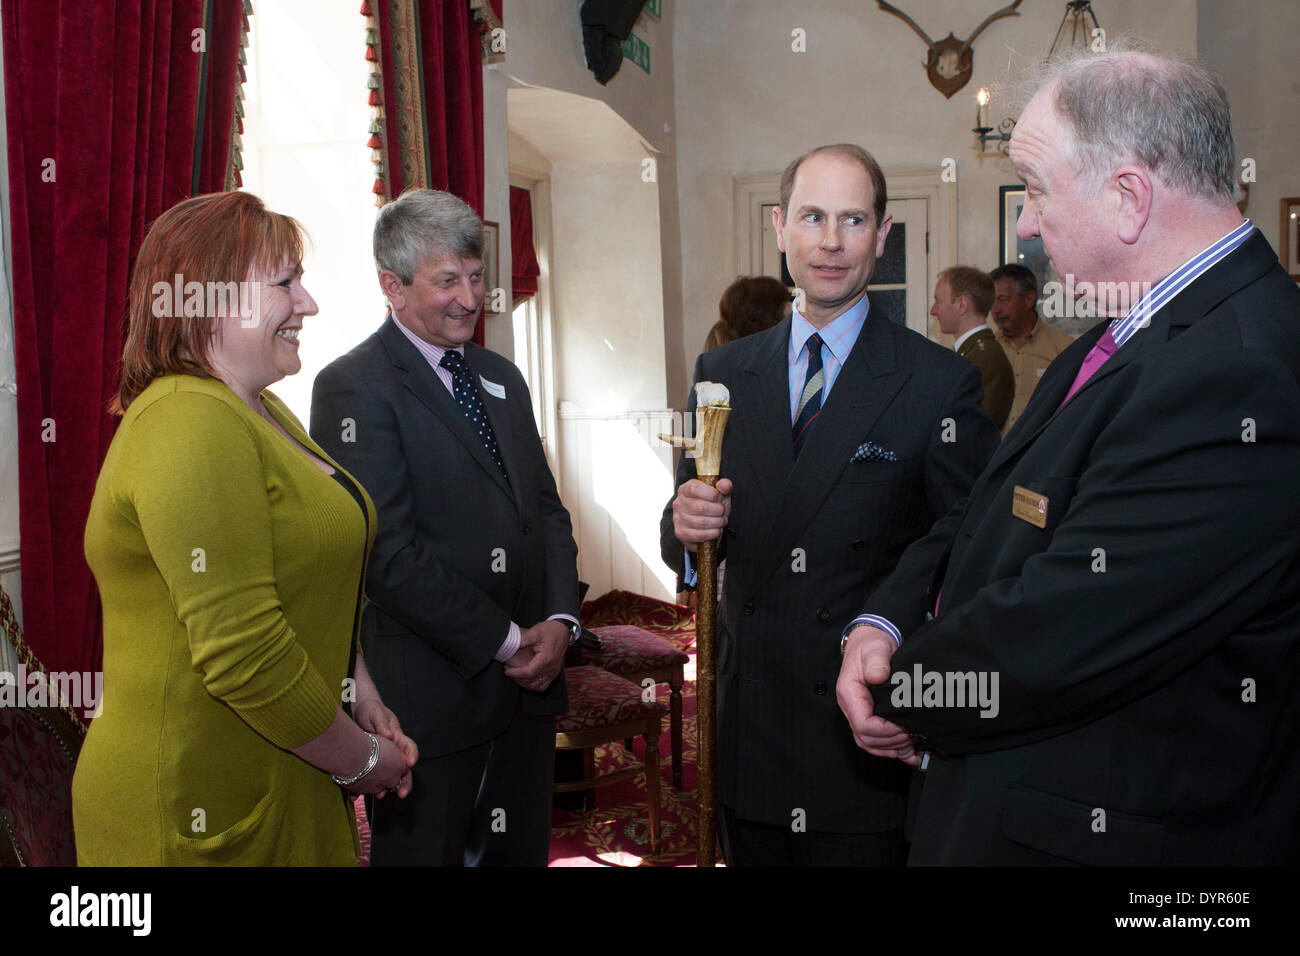 Coleford, Gloucestershire, UK. 24th Apr, 2014. Peter Hands of Speech House Hotel present Mr Nick Horton and Samm Jarman to HRH The Countess of Wessex. Mr Hortons company Roya;l Forest Pennant donated repairs to the scheduled monument which marks the center of the historic forest. Credit:  David Broadbent/Alamy Live News - Stock Image